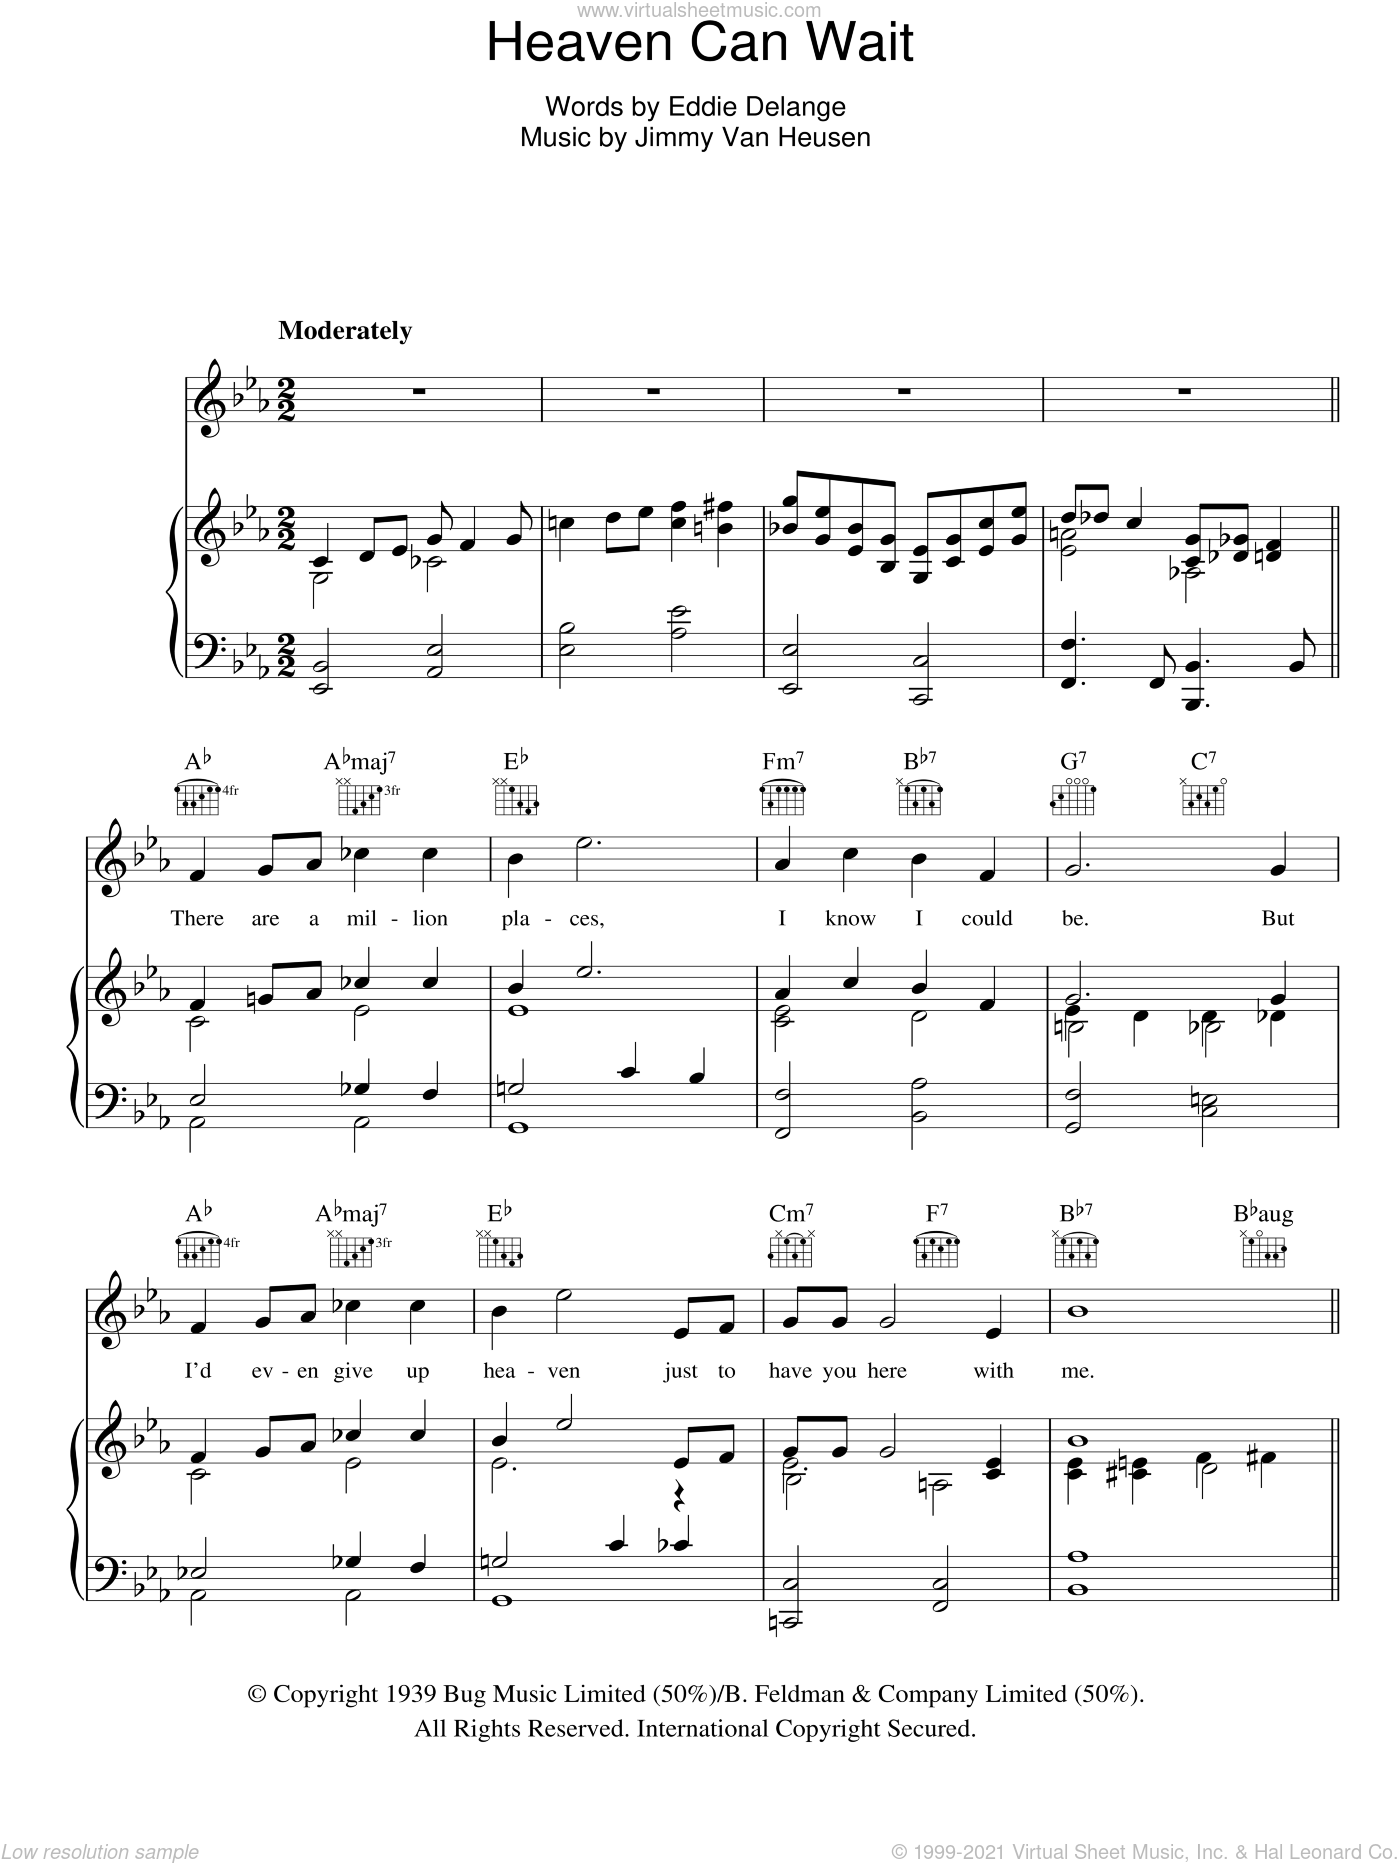 Heaven Can Wait sheet music for voice, piano or guitar by Glen Miller, Eddie DeLange and Jimmy Van Heusen, intermediate skill level